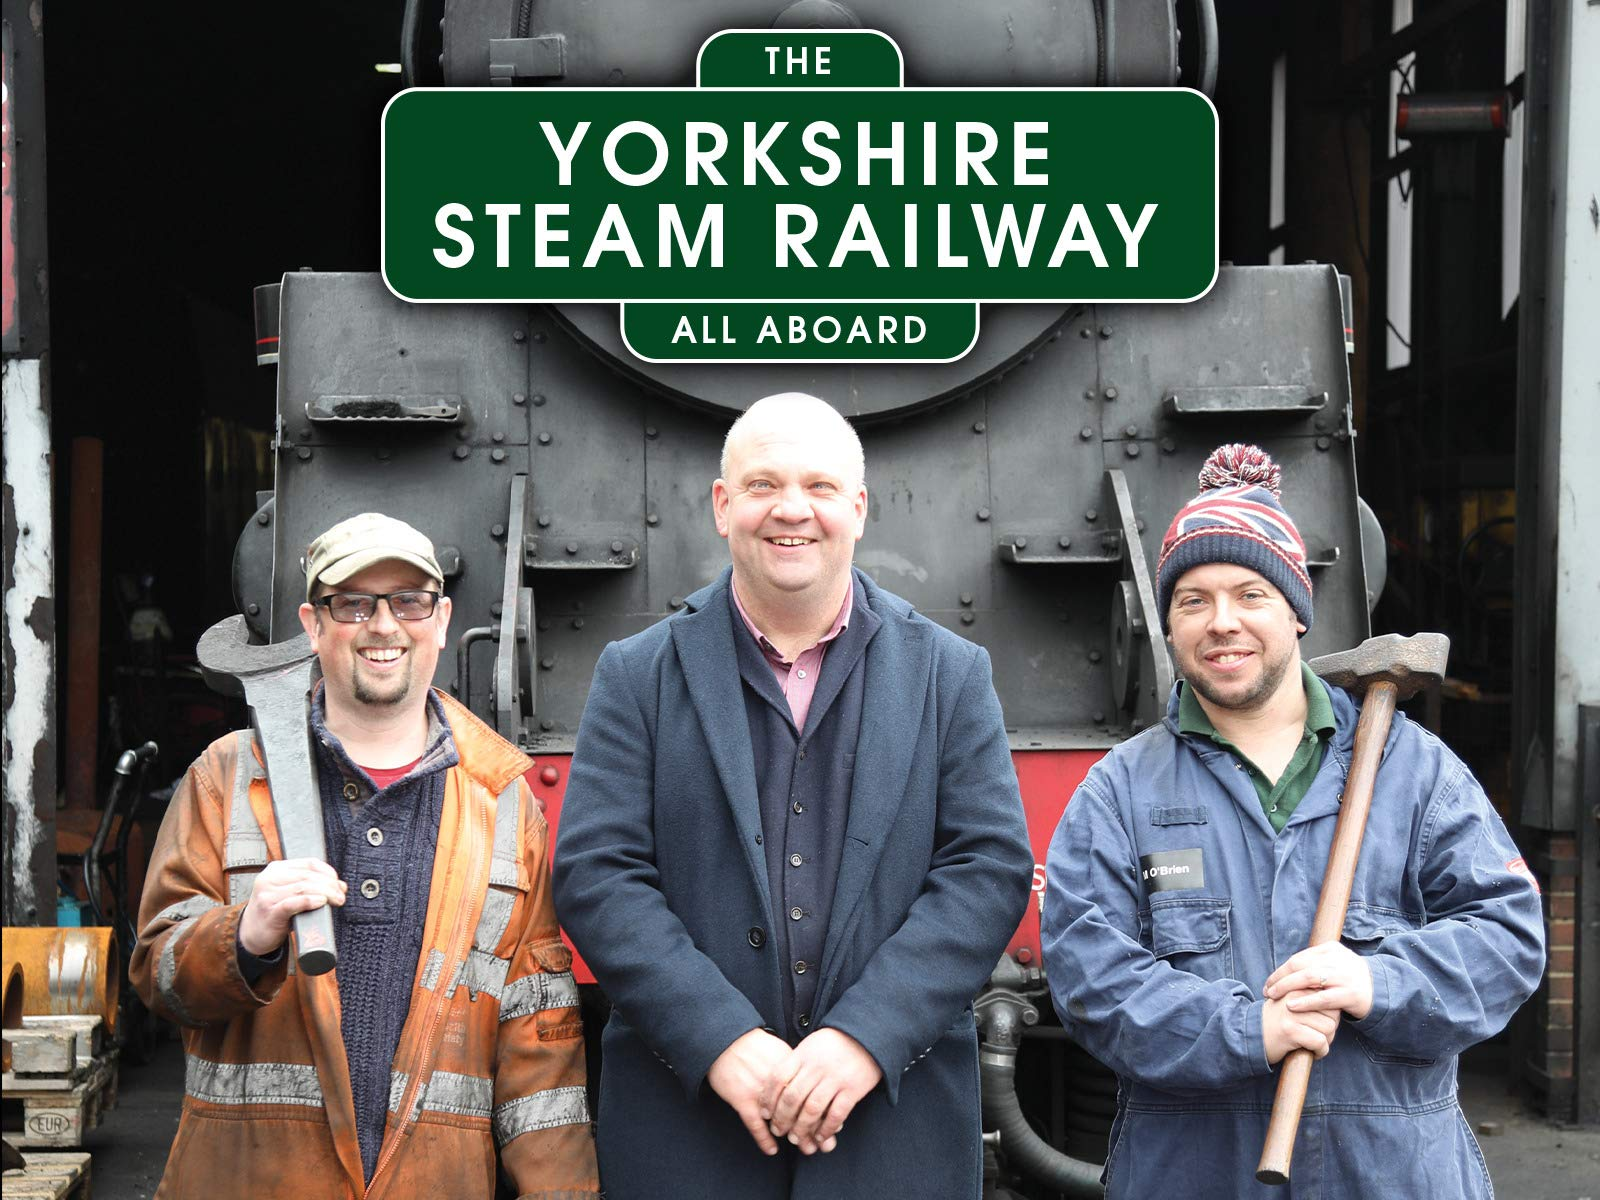 The Yorkshire Steam Railway: All Aboard - Season 1